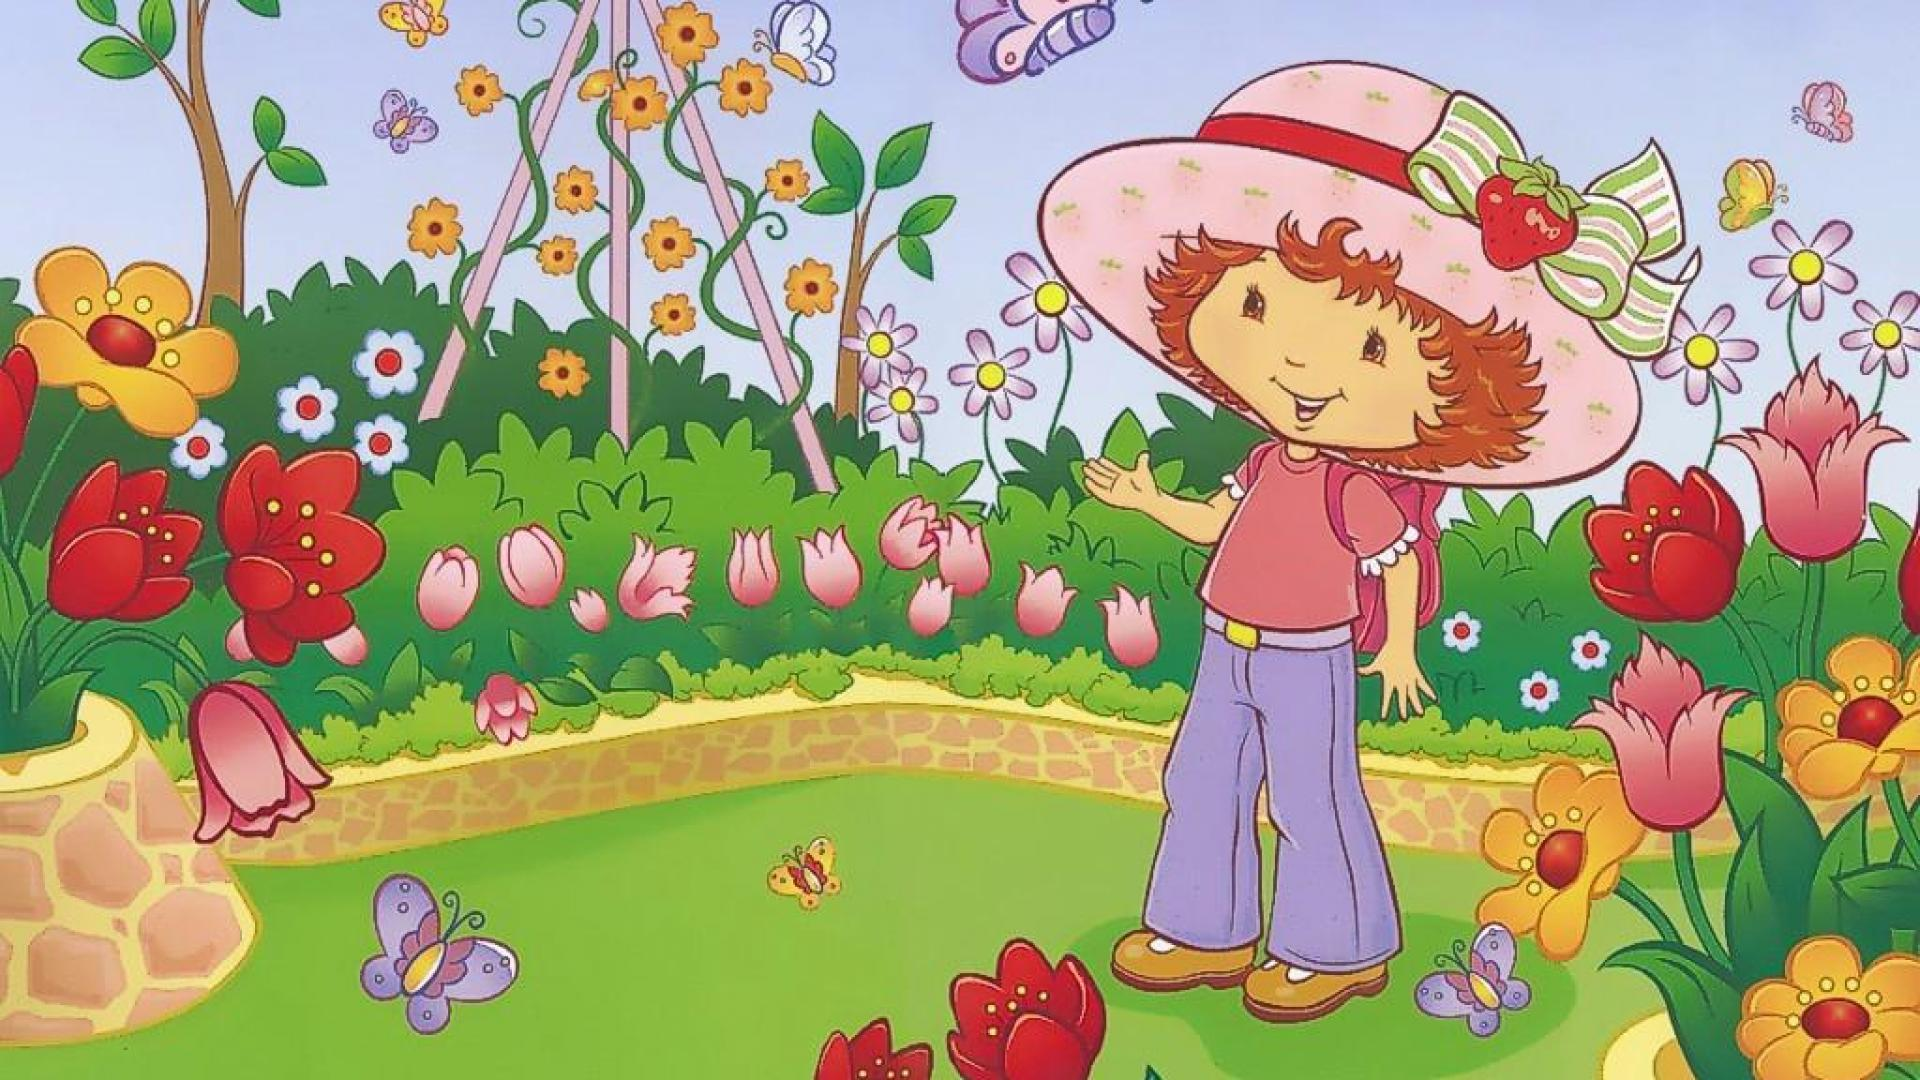 48 stocks at Strawberry Shortcake Wallpapers group 1920x1080